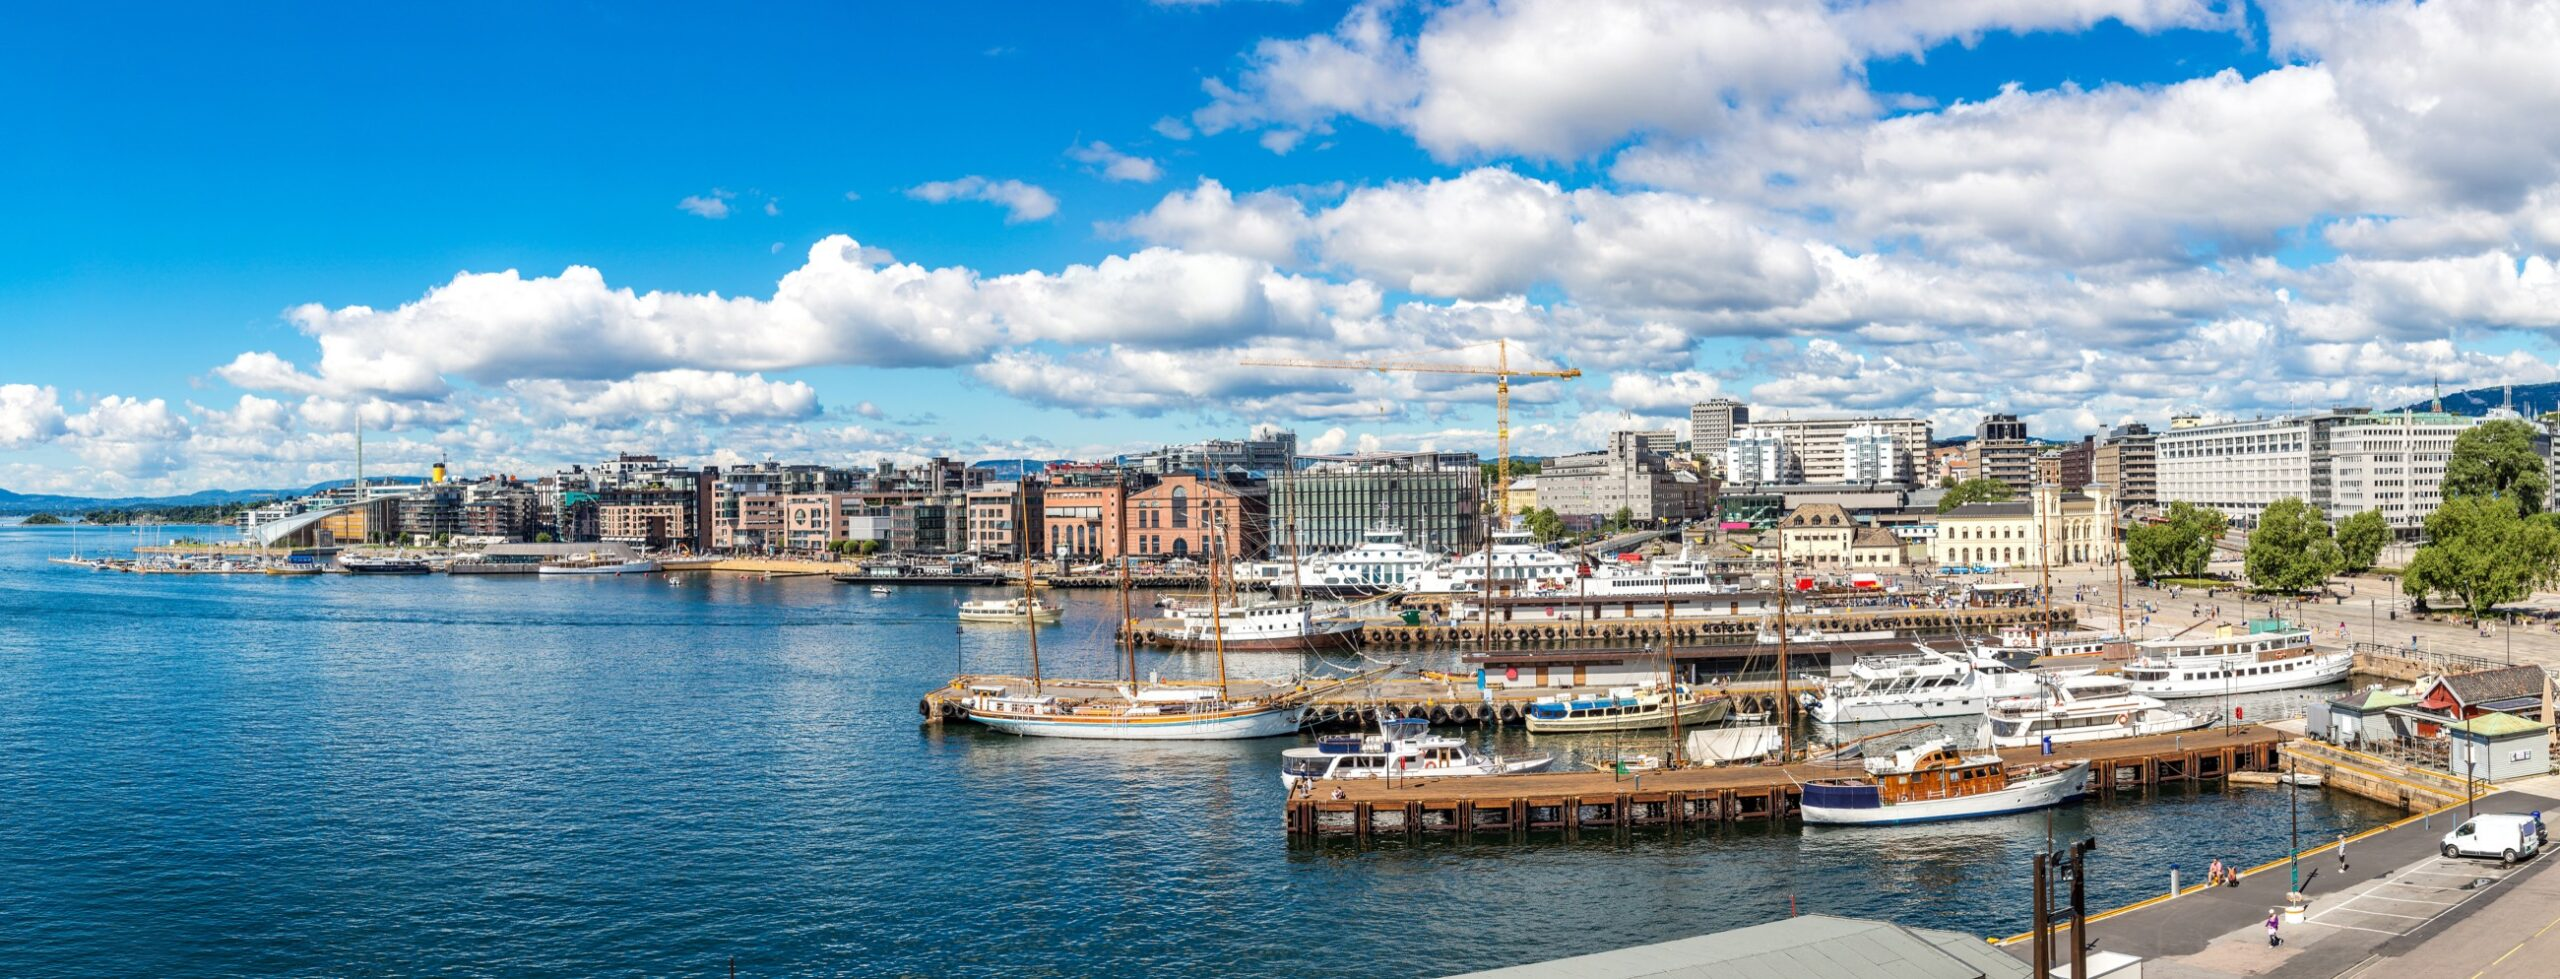 Oslo–A-City-that-knows-how-to-Party-Best-Things-to-Do